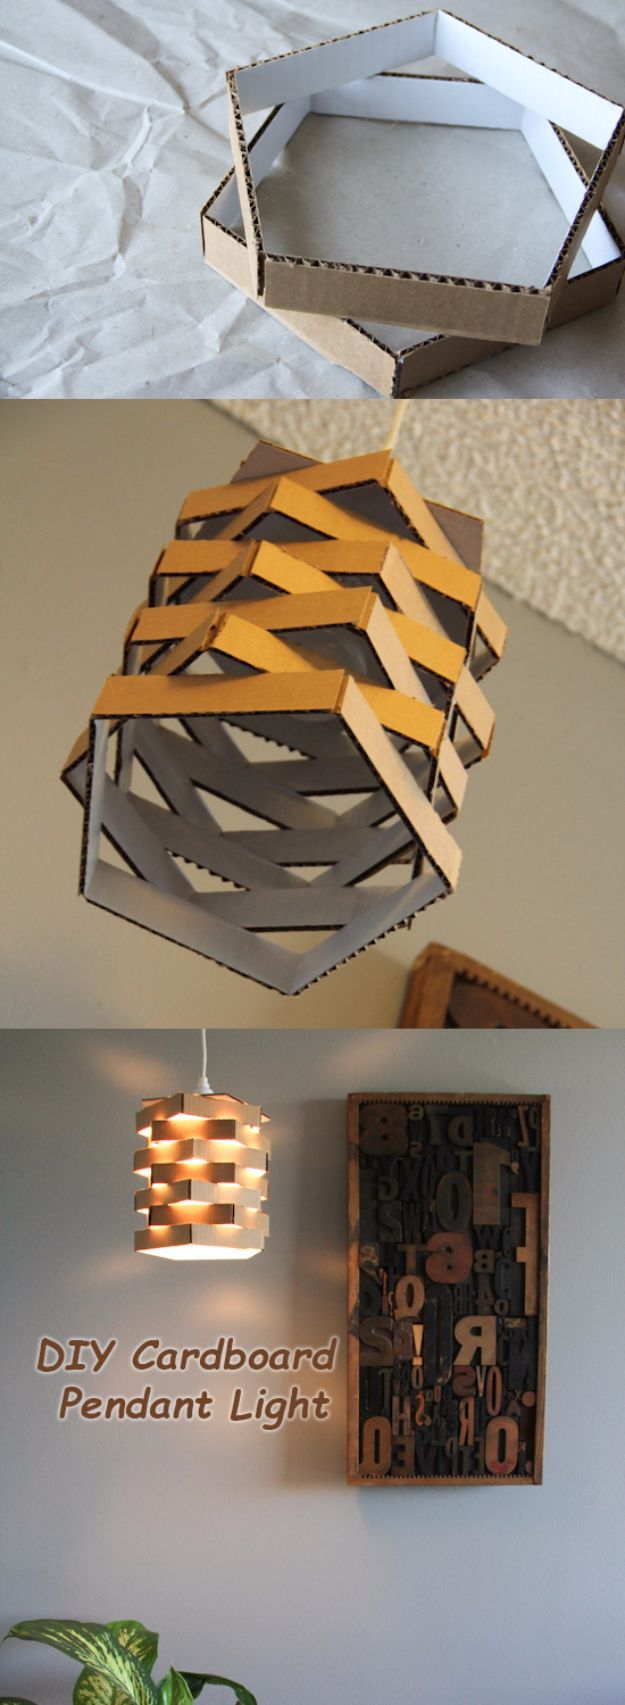 DIY Ideas With Cardboard - DIY Cardboard Pendant Light - How To Make Room Decor Crafts for Kids - Easy and Crafty Storage Ideas For Room - Toilet Paper Roll Projects Tutorials - Fun Furniture Ideas with Cardboard - Cheap, Quick and Easy Wall Decorations #diyideas #cardboardcrafts #crafts